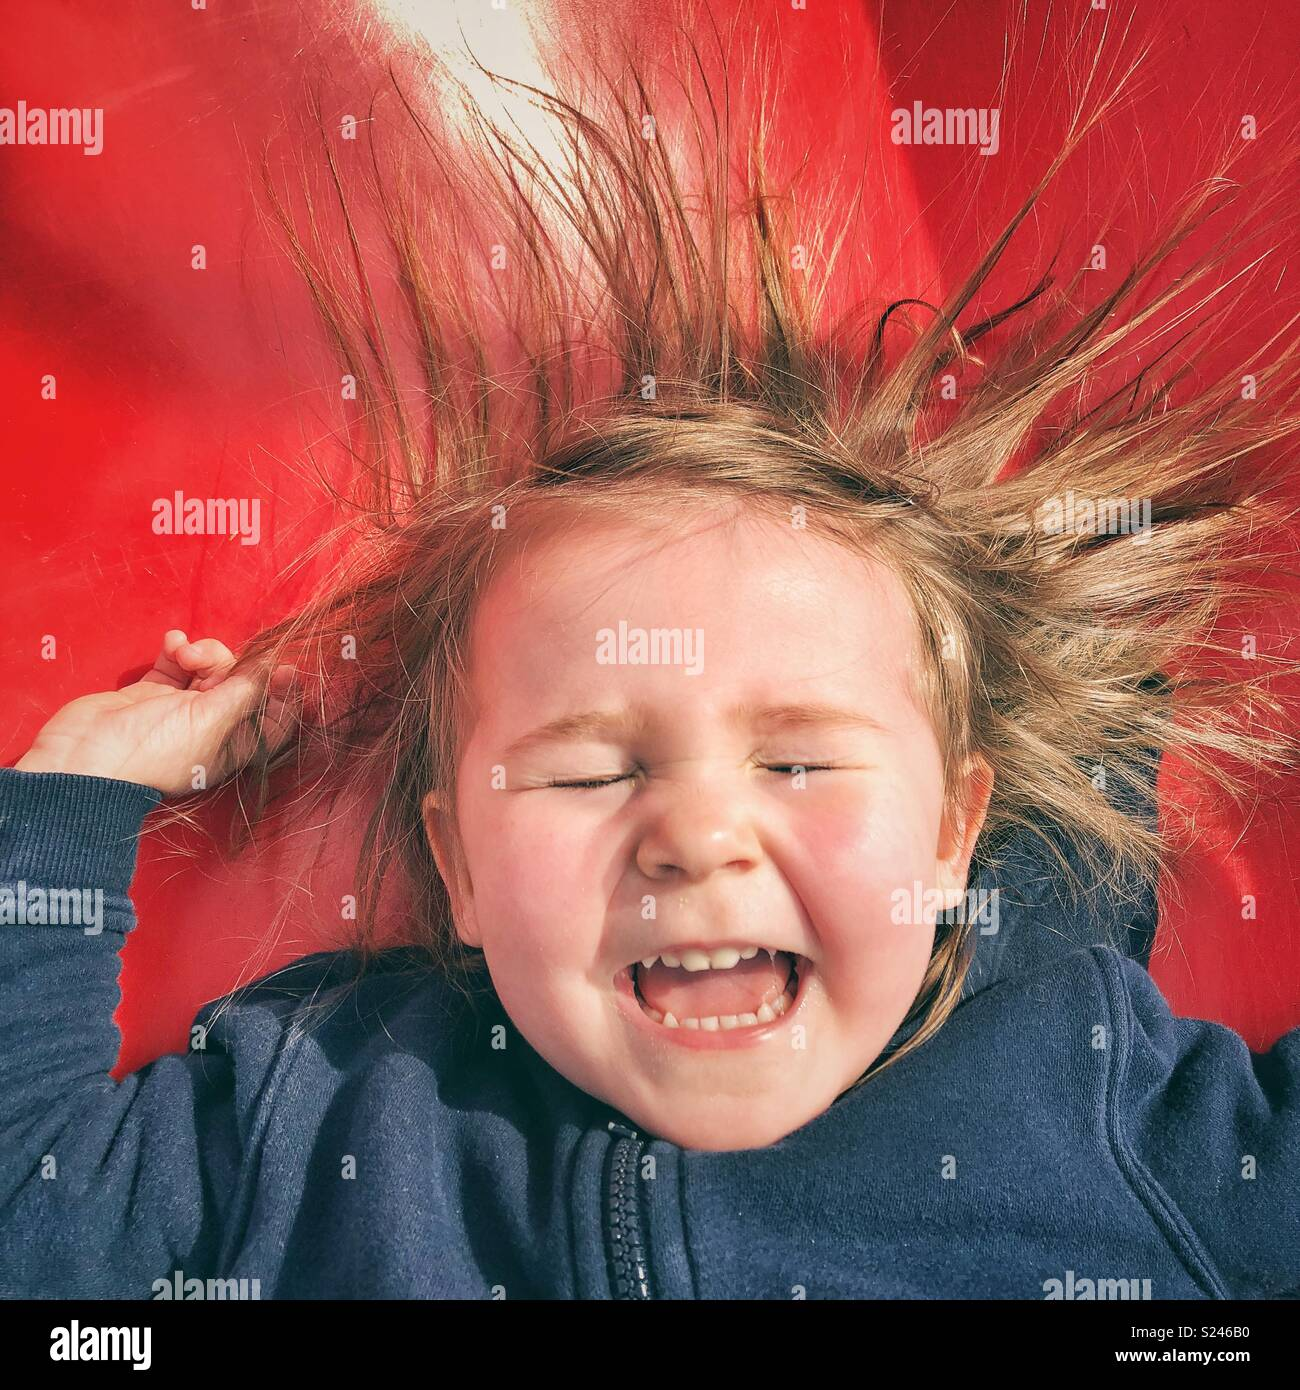 Portrait of happy toddler girl face as she slides down a red slide with eyes closed, mouth open and hair sticking up from static electricity - Stock Image